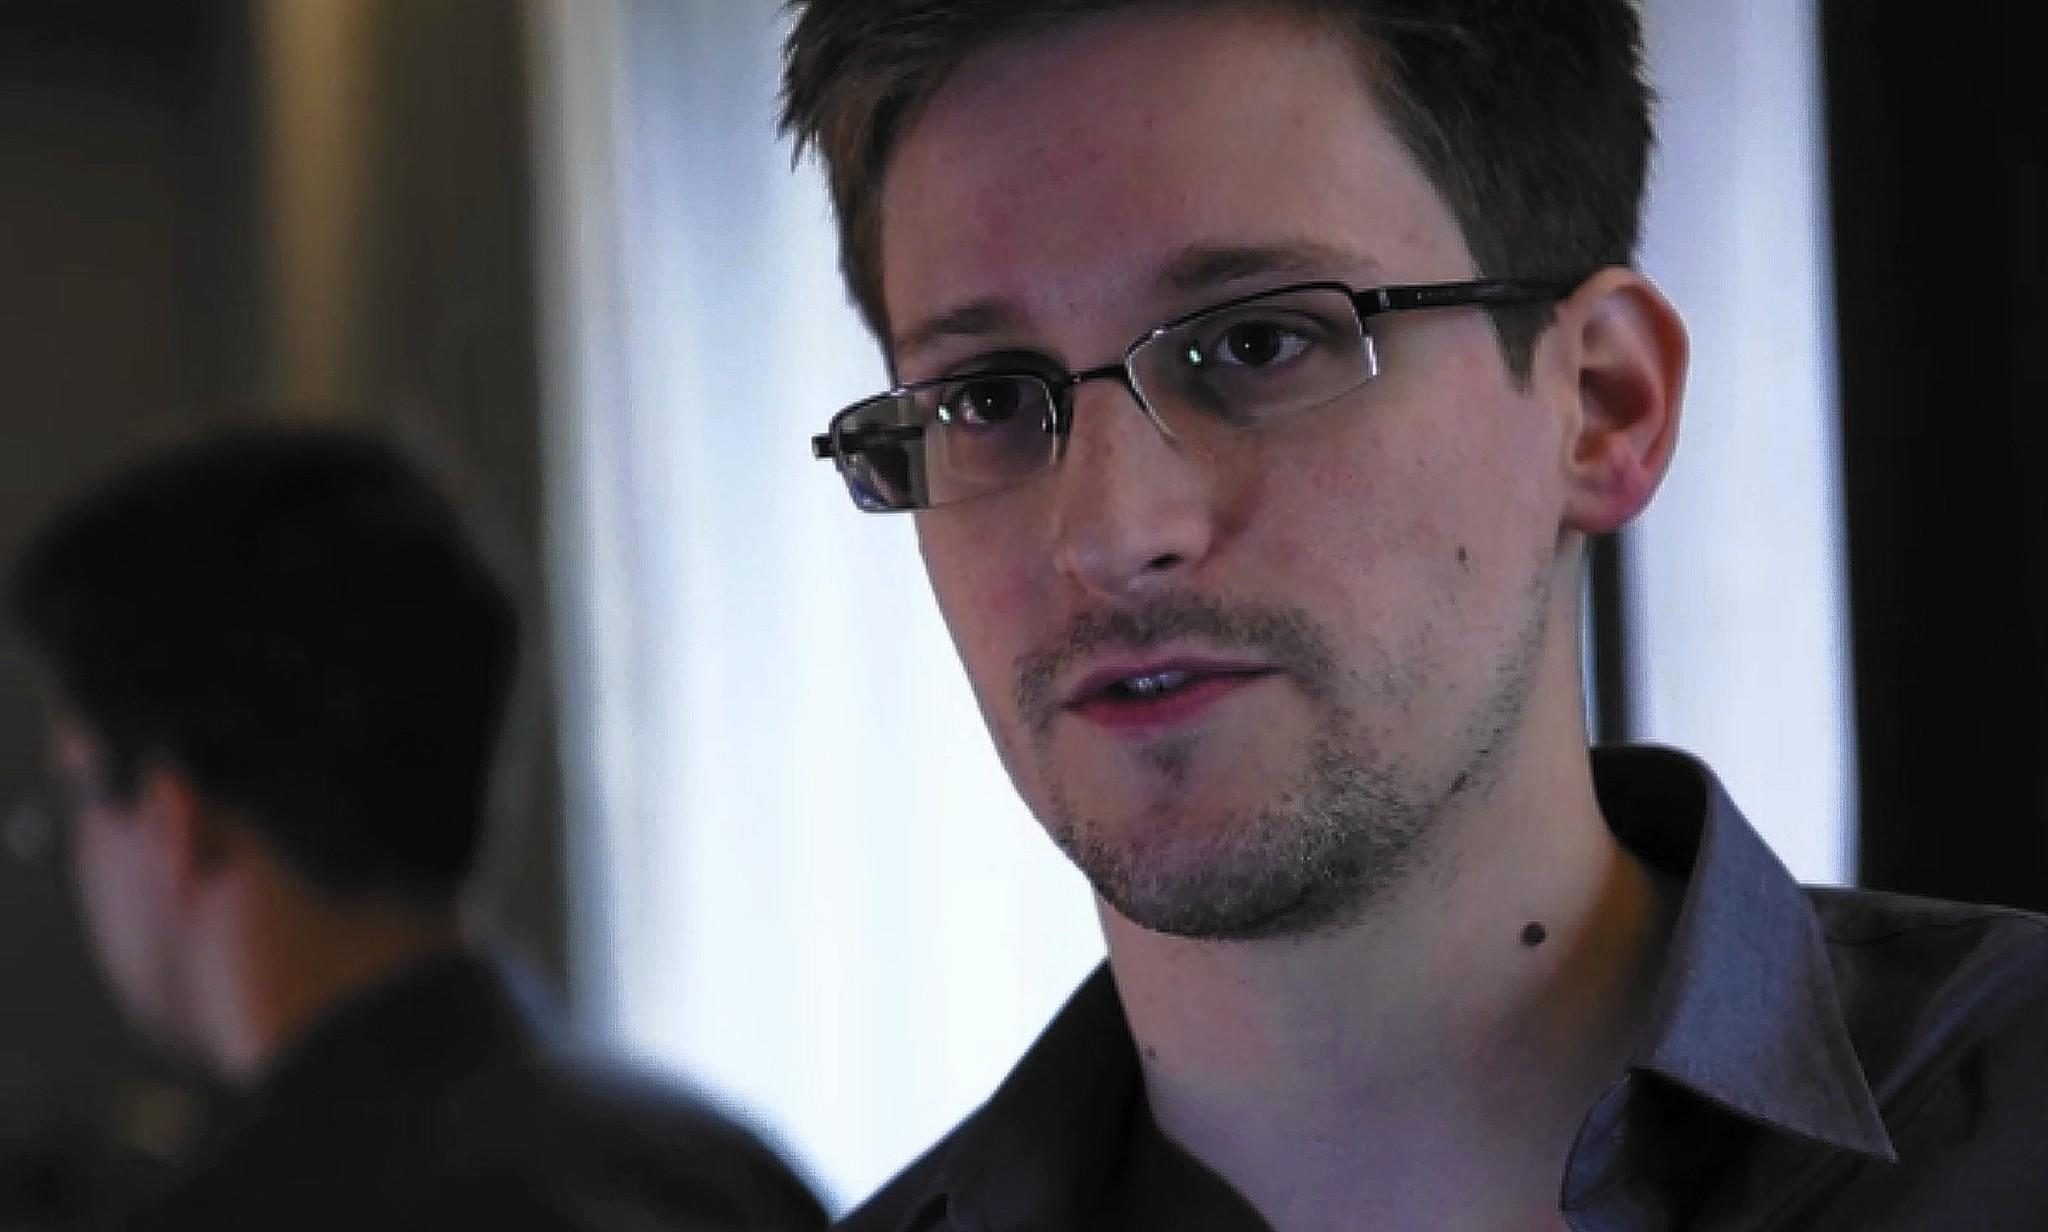 Edward Snowden's disclosures have prompted President Obama to consider changes to the way U.S. agencies collect intelligence. He plans a speech to address the issue Friday.